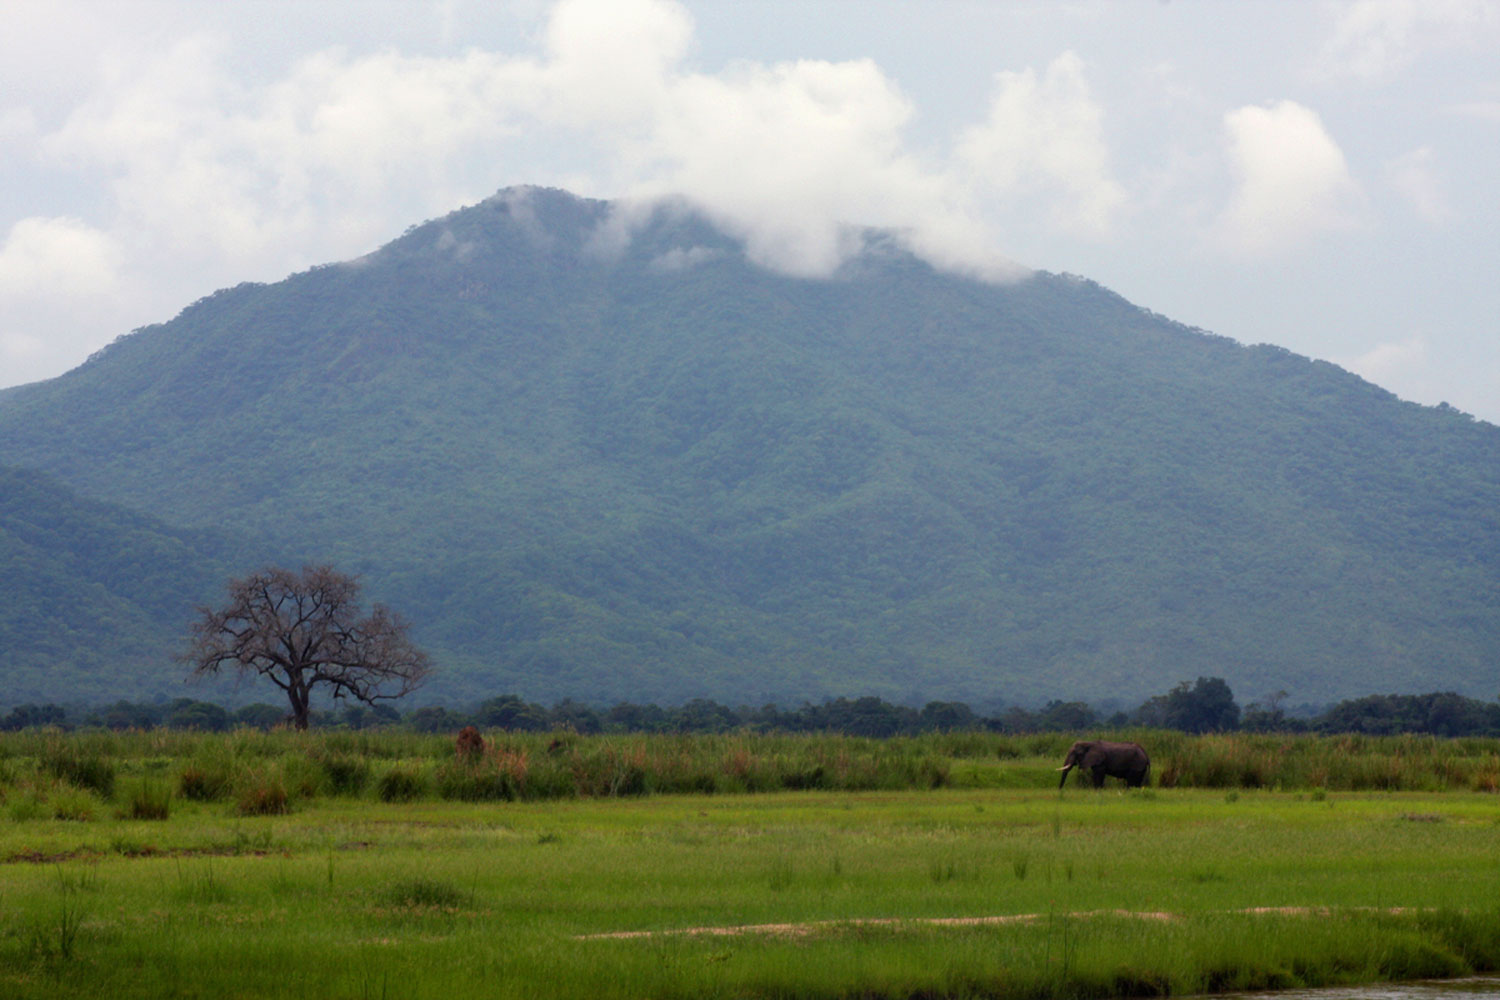 One of the many grassy islands with the Zambian escarpment in the background